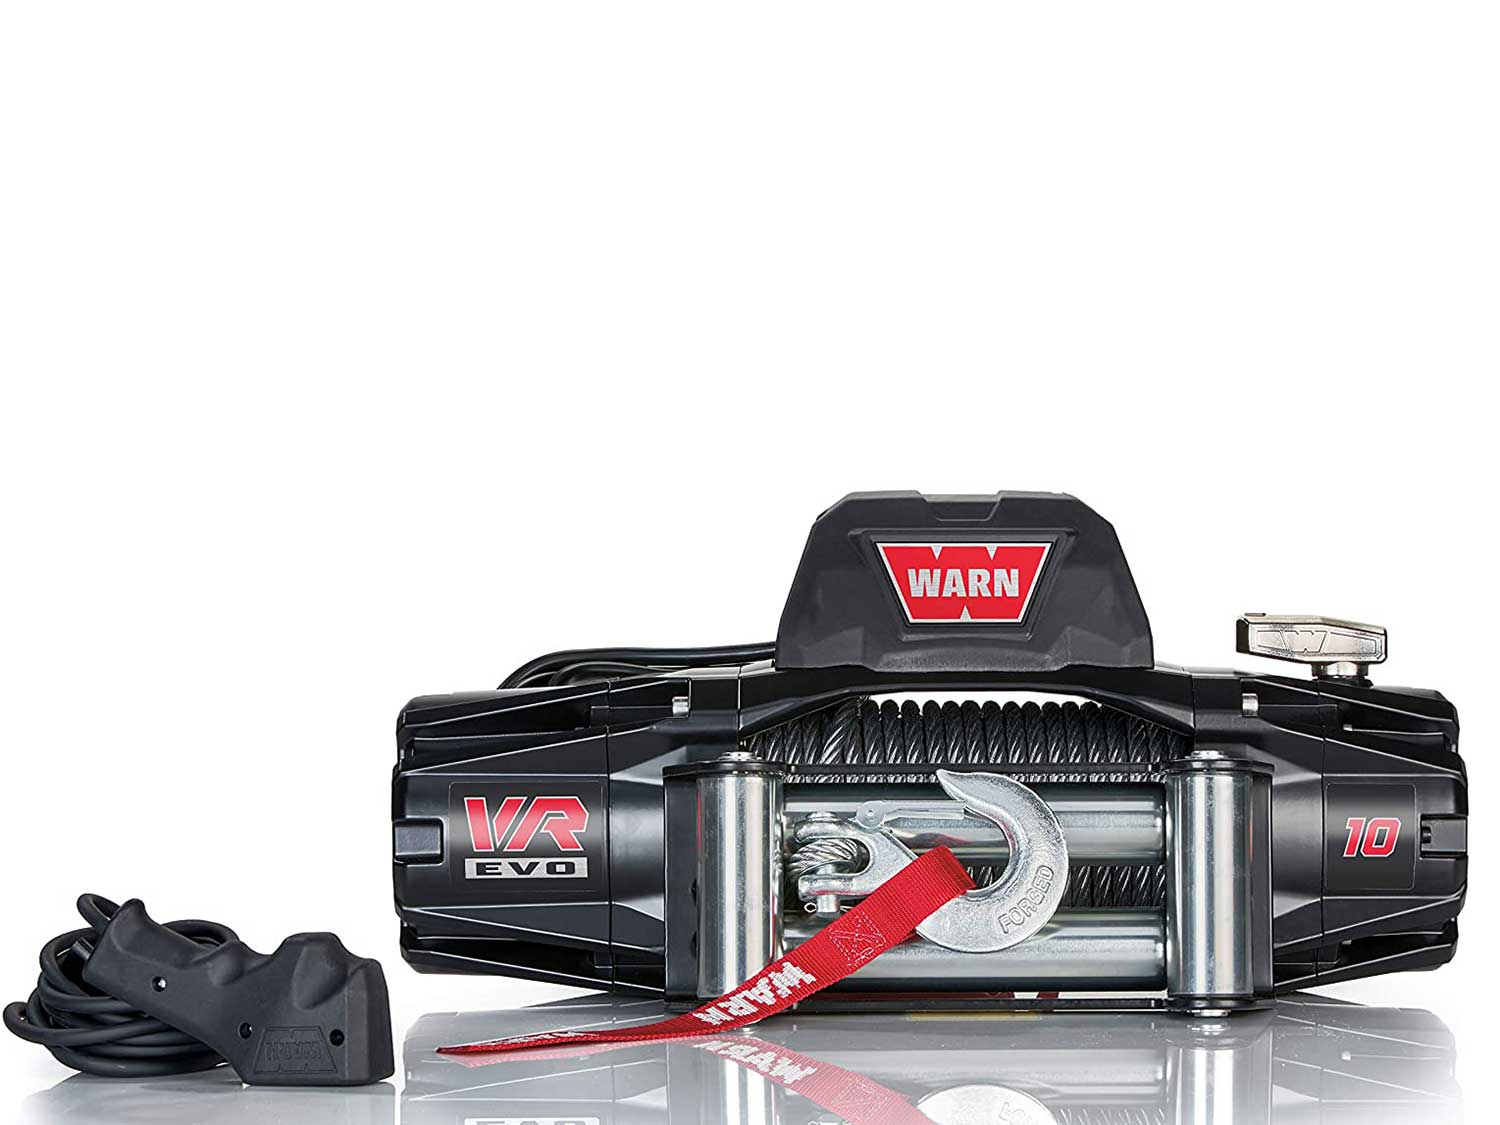 WARN 103252 VR EVO 10 Electric 12V DC Winch with Steel Cable Wire Rope: 3/8